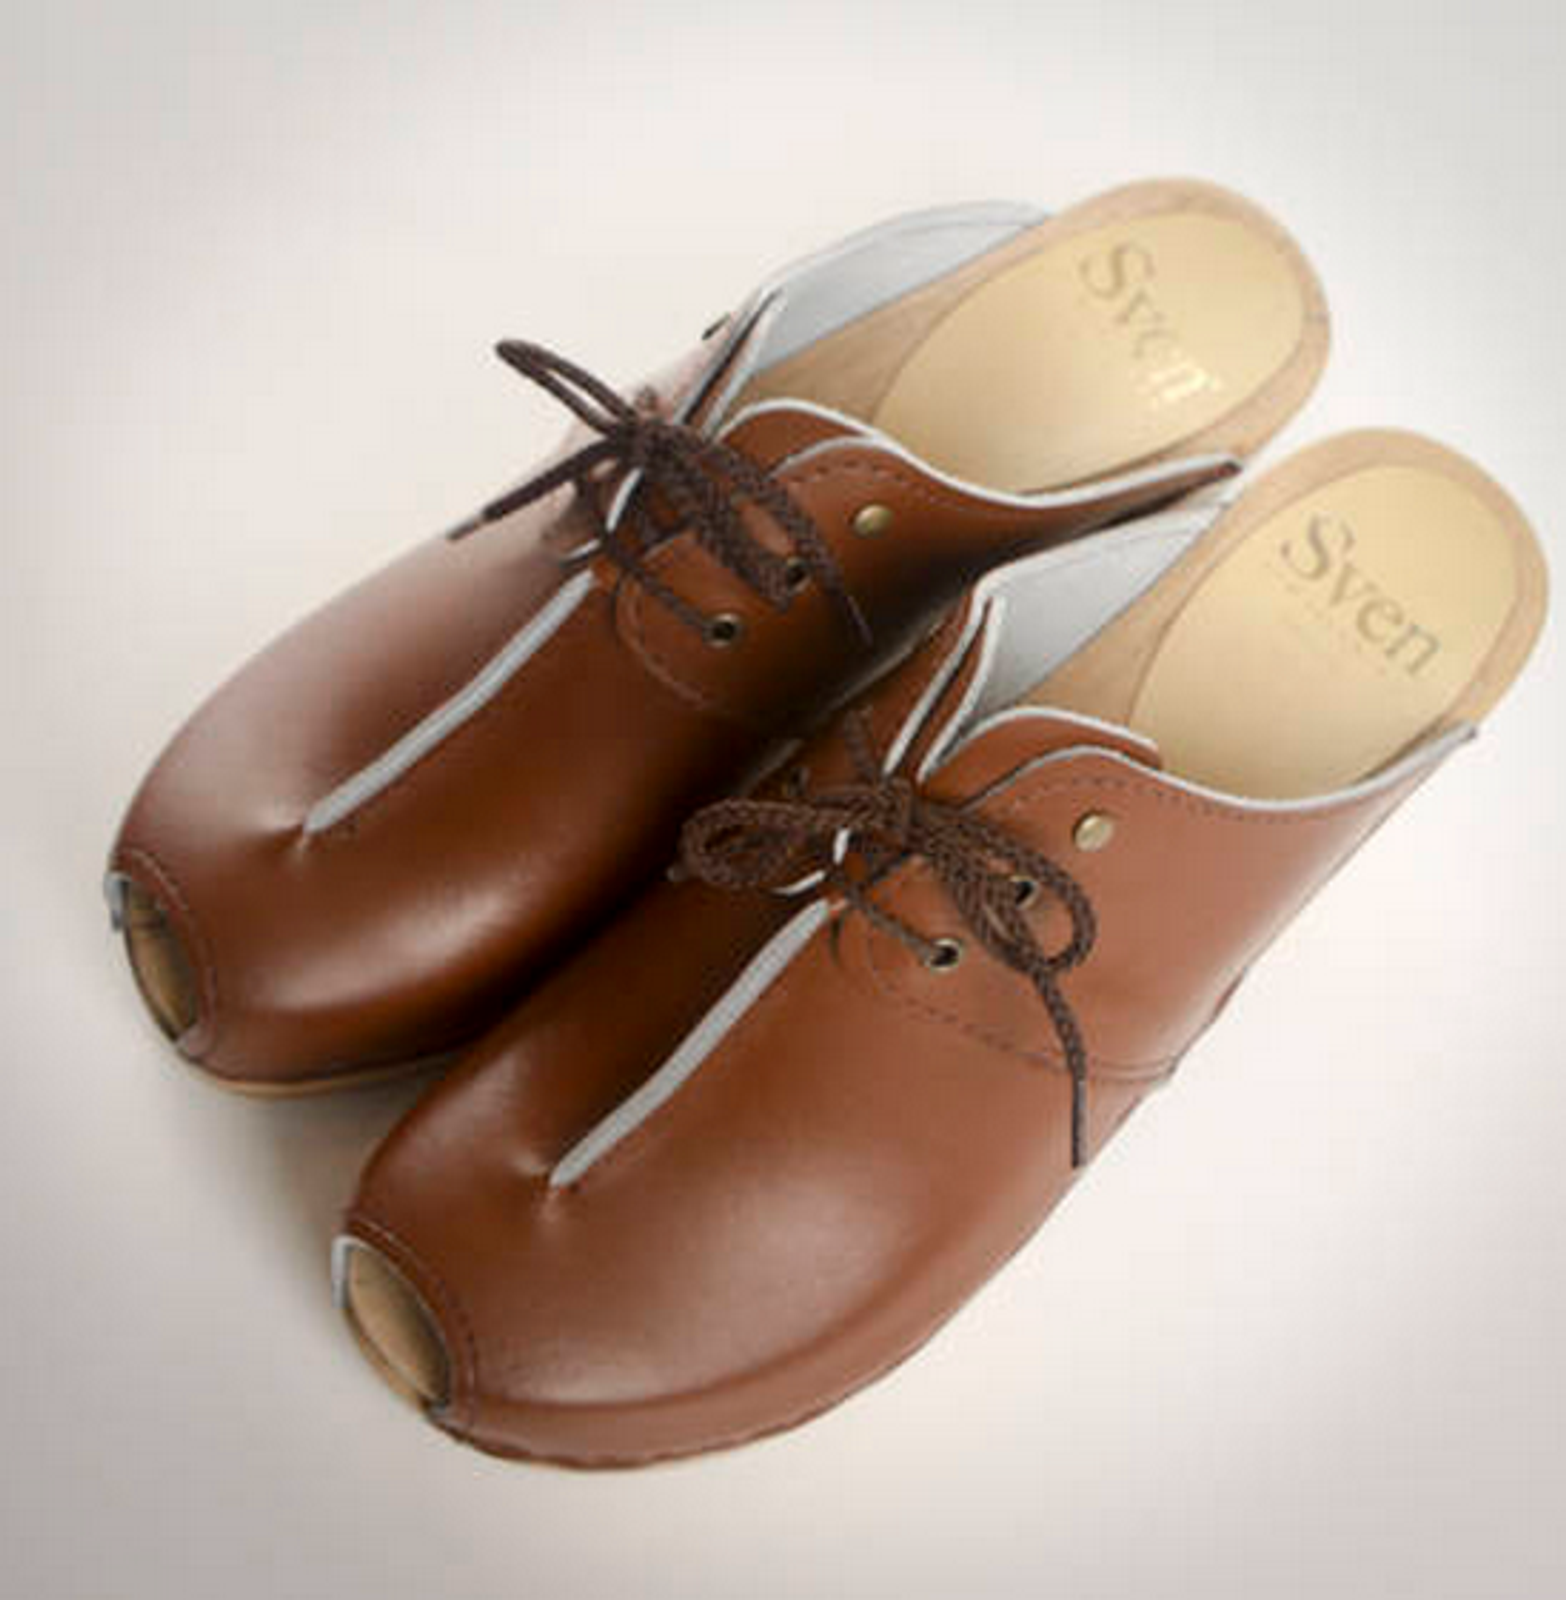 British Tan Smooth Leather with Brown Base.